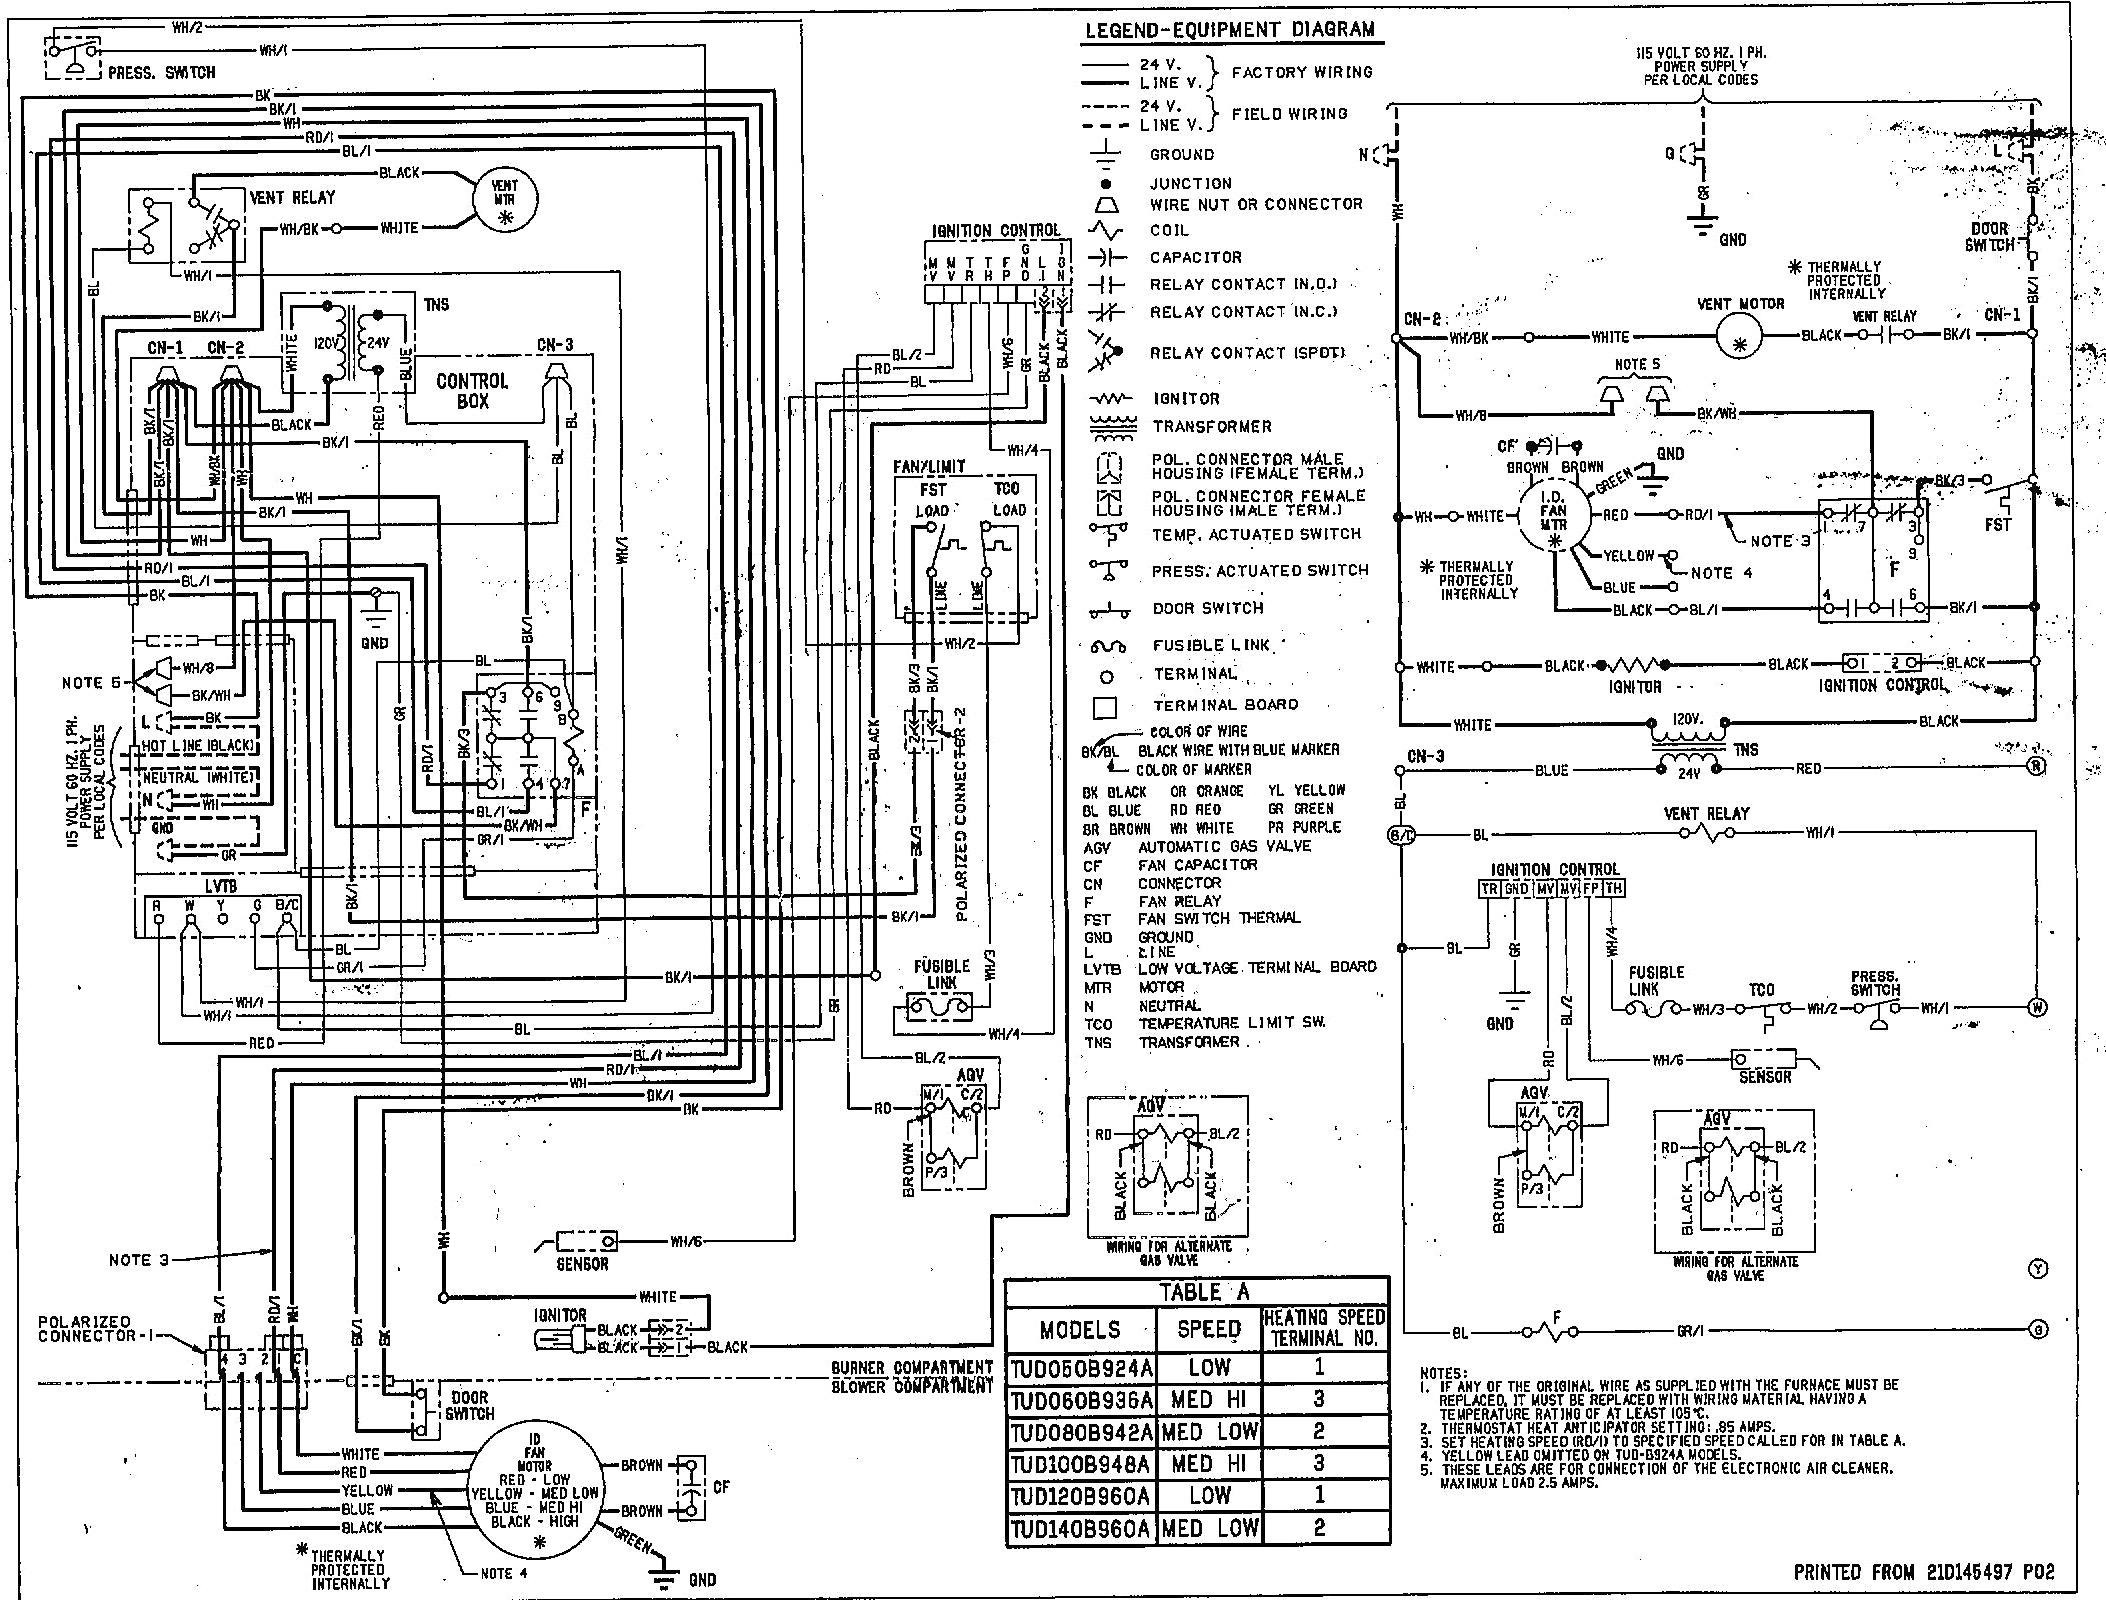 Trane Unit Heater Wiring Diagram - Rheem Hvac Wiring Diagram Best Trane Furnace Wiring Diagram Best Rheem thermostat Wiring Diagram 12b